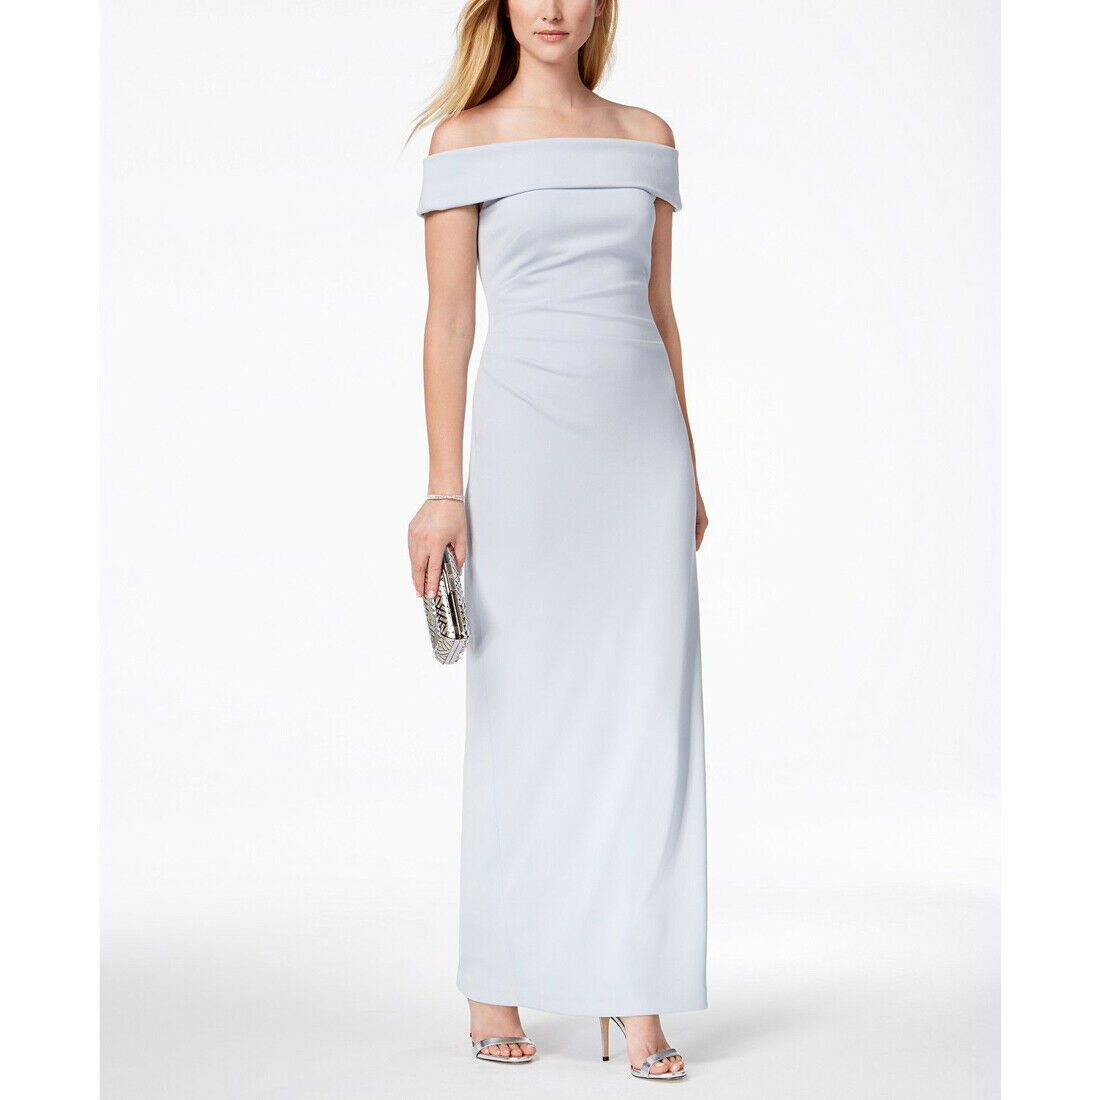 Vince Camuto Off-the-shoulder Gown, Light Blue, 14